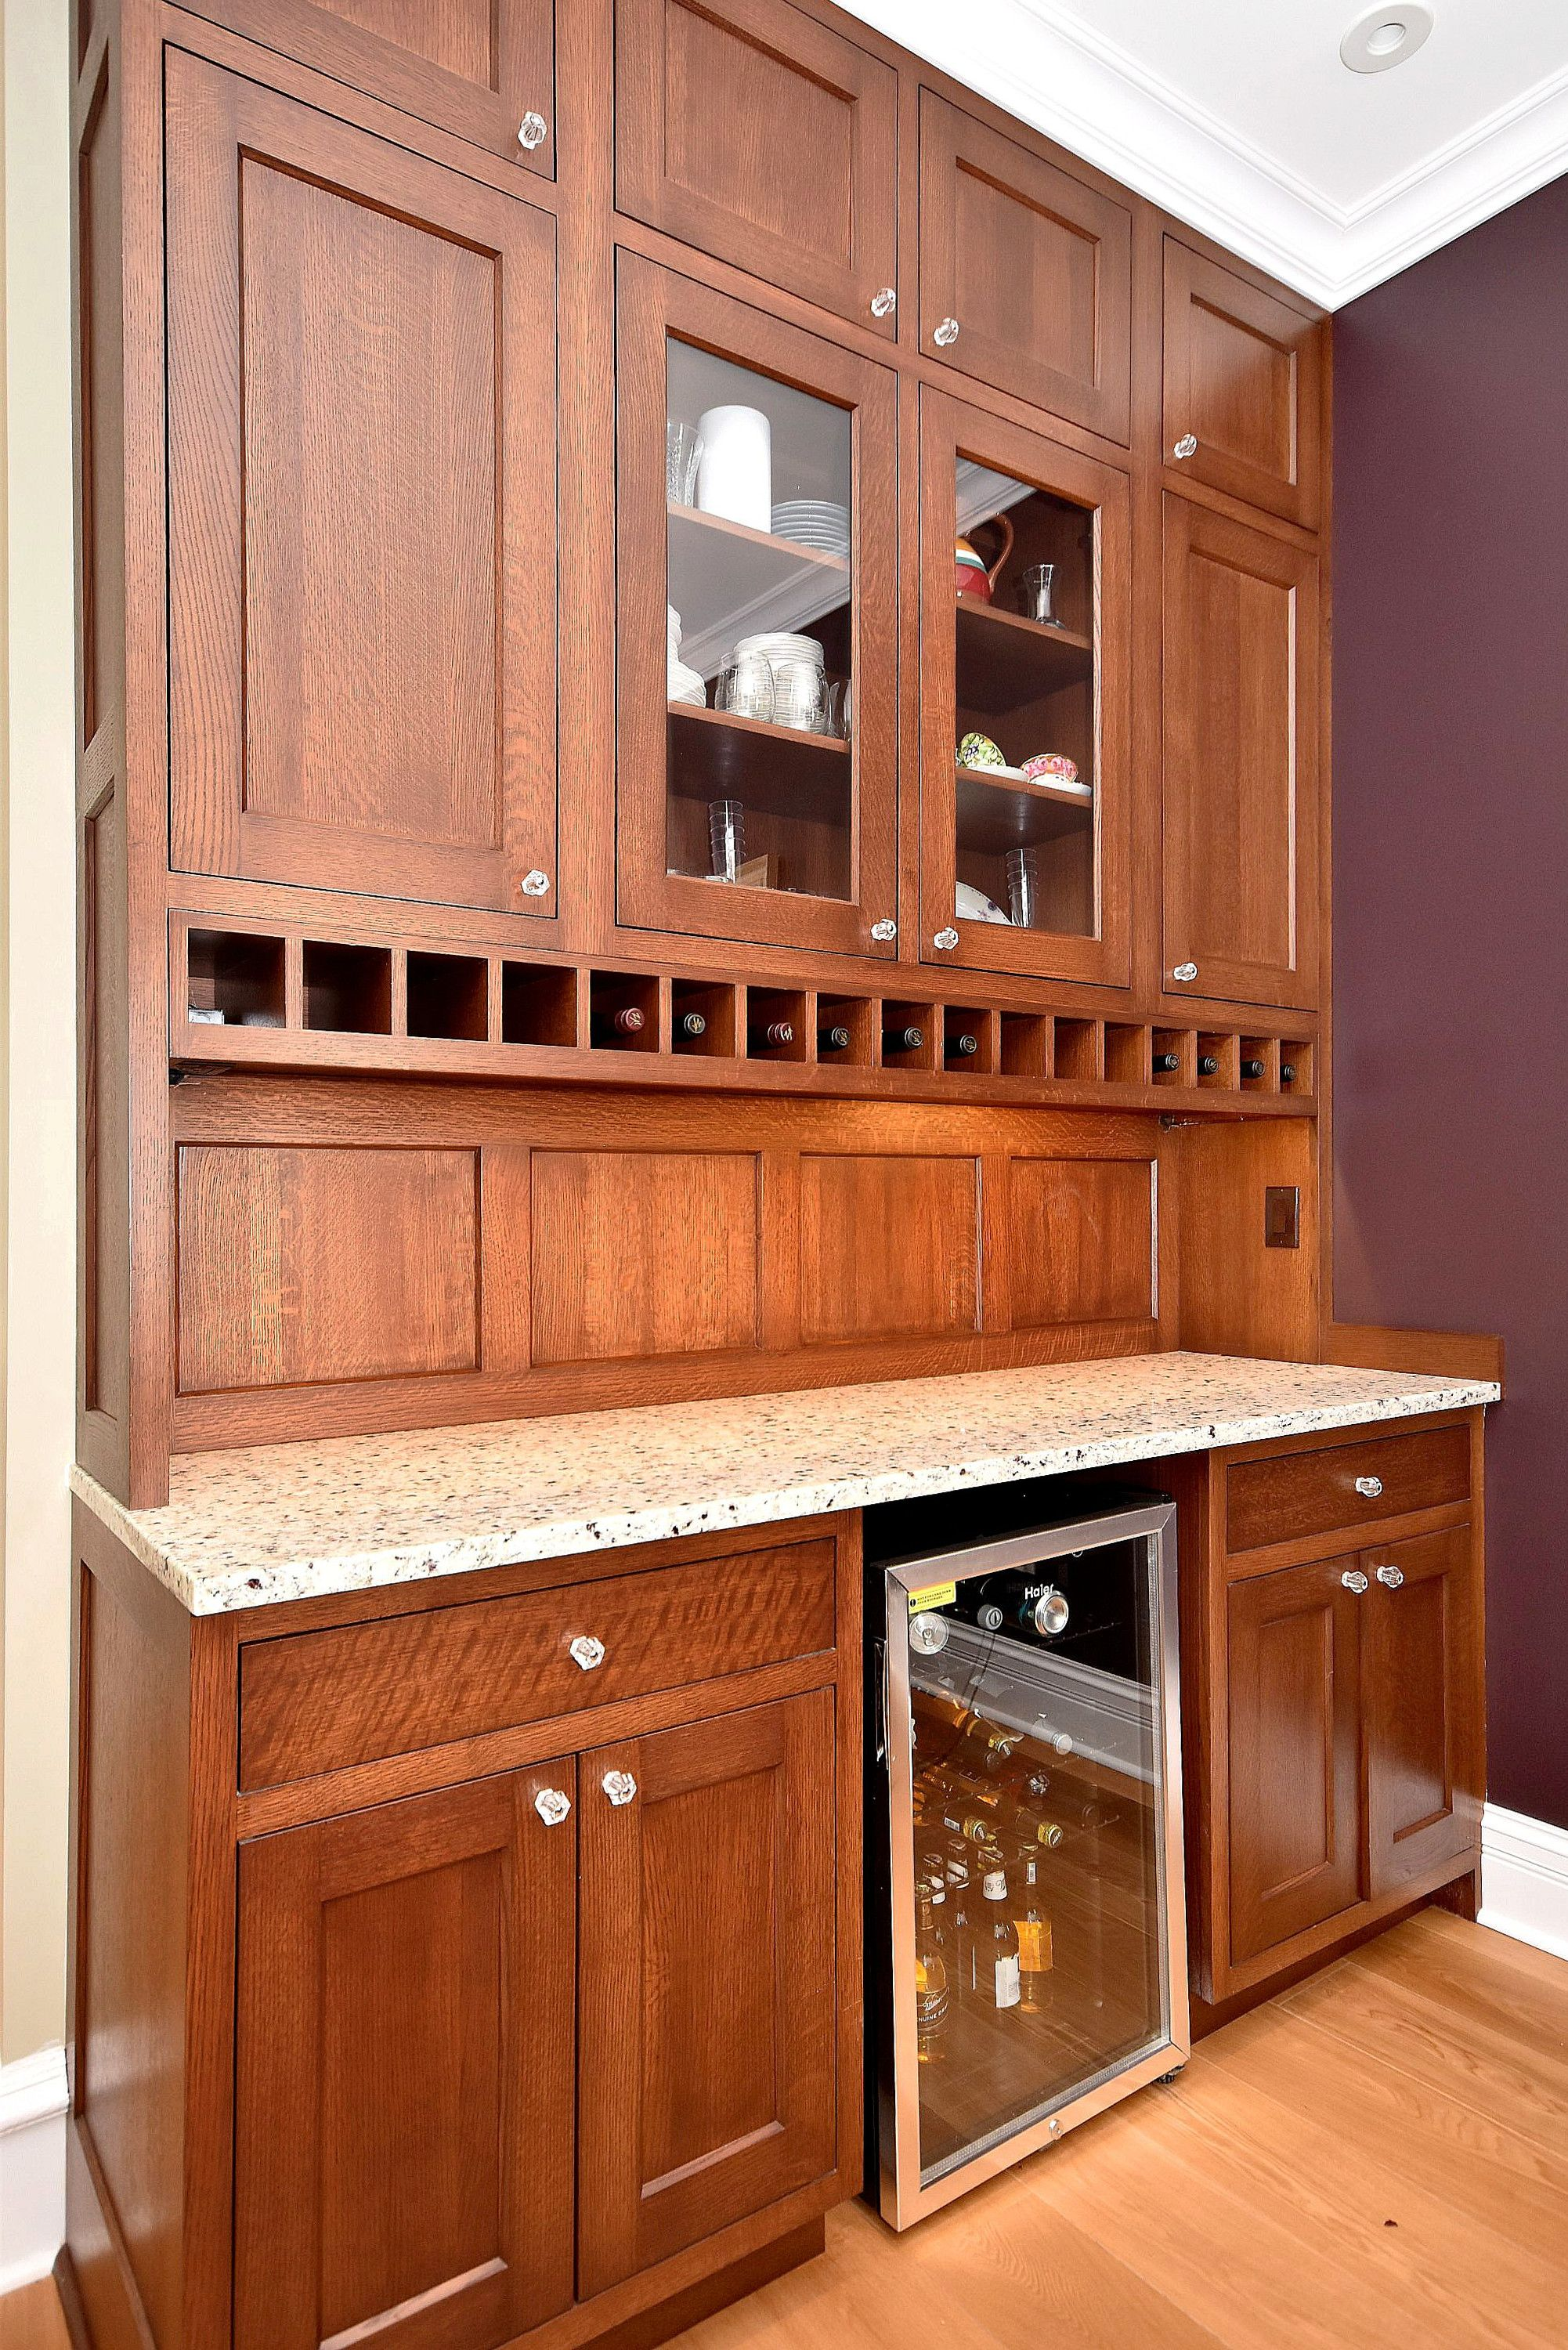 Quarter Sawn Oak Archives Amish Custom Kitchens In 2020 Custom Kitchens Amish Kitchen Cabinets Oak Kitchen Cabinets